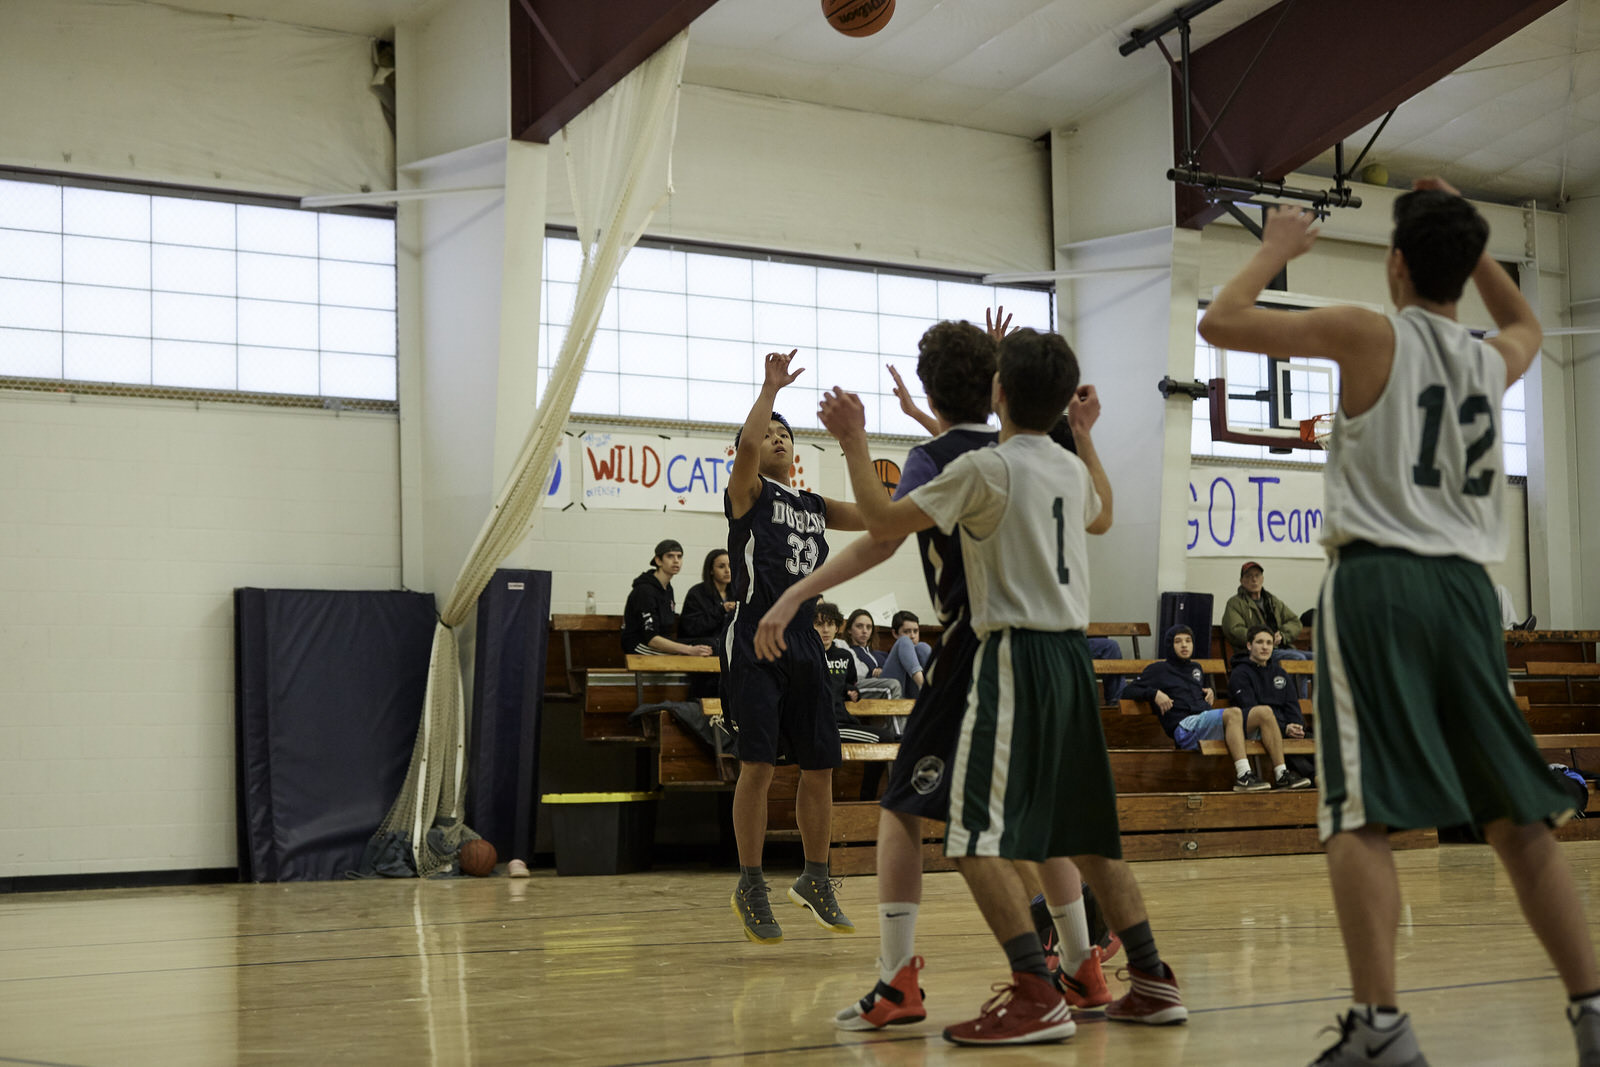 Dublin JV Boys Basketball vs High Mowing School - Jan 26 2019 - 0177.jpg